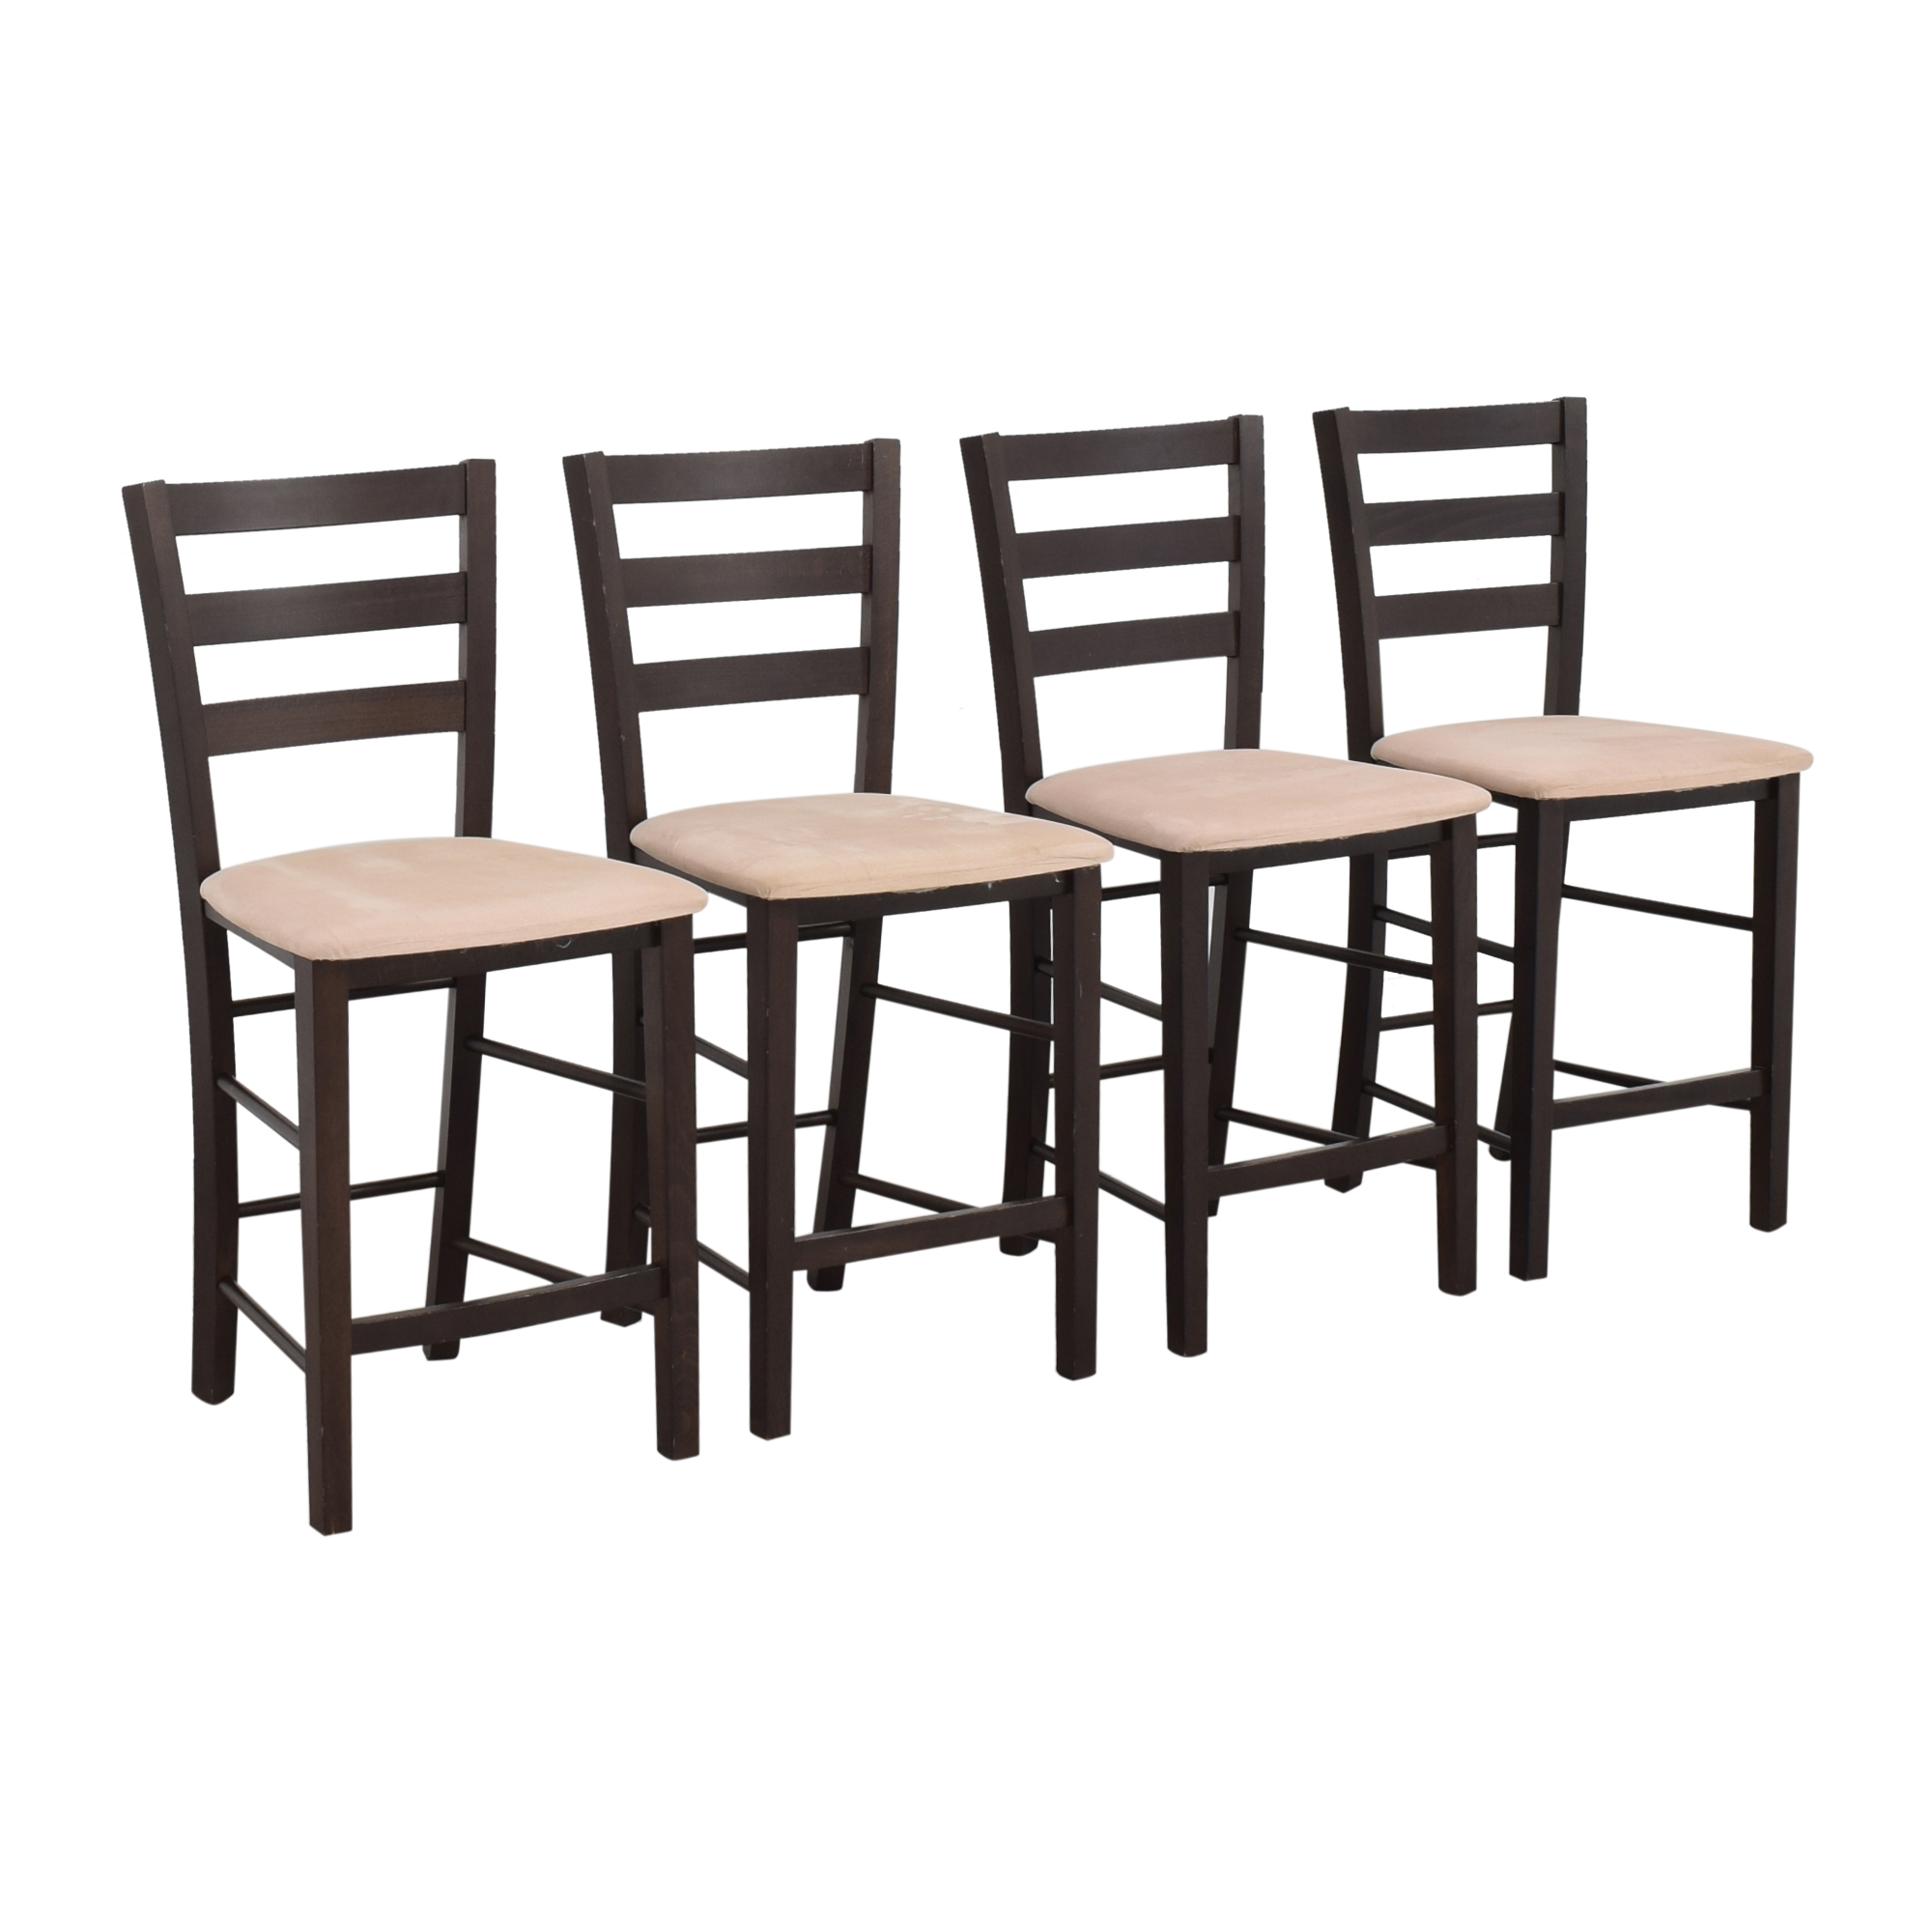 Macy's Cafe Latte Counter Stools / Chairs